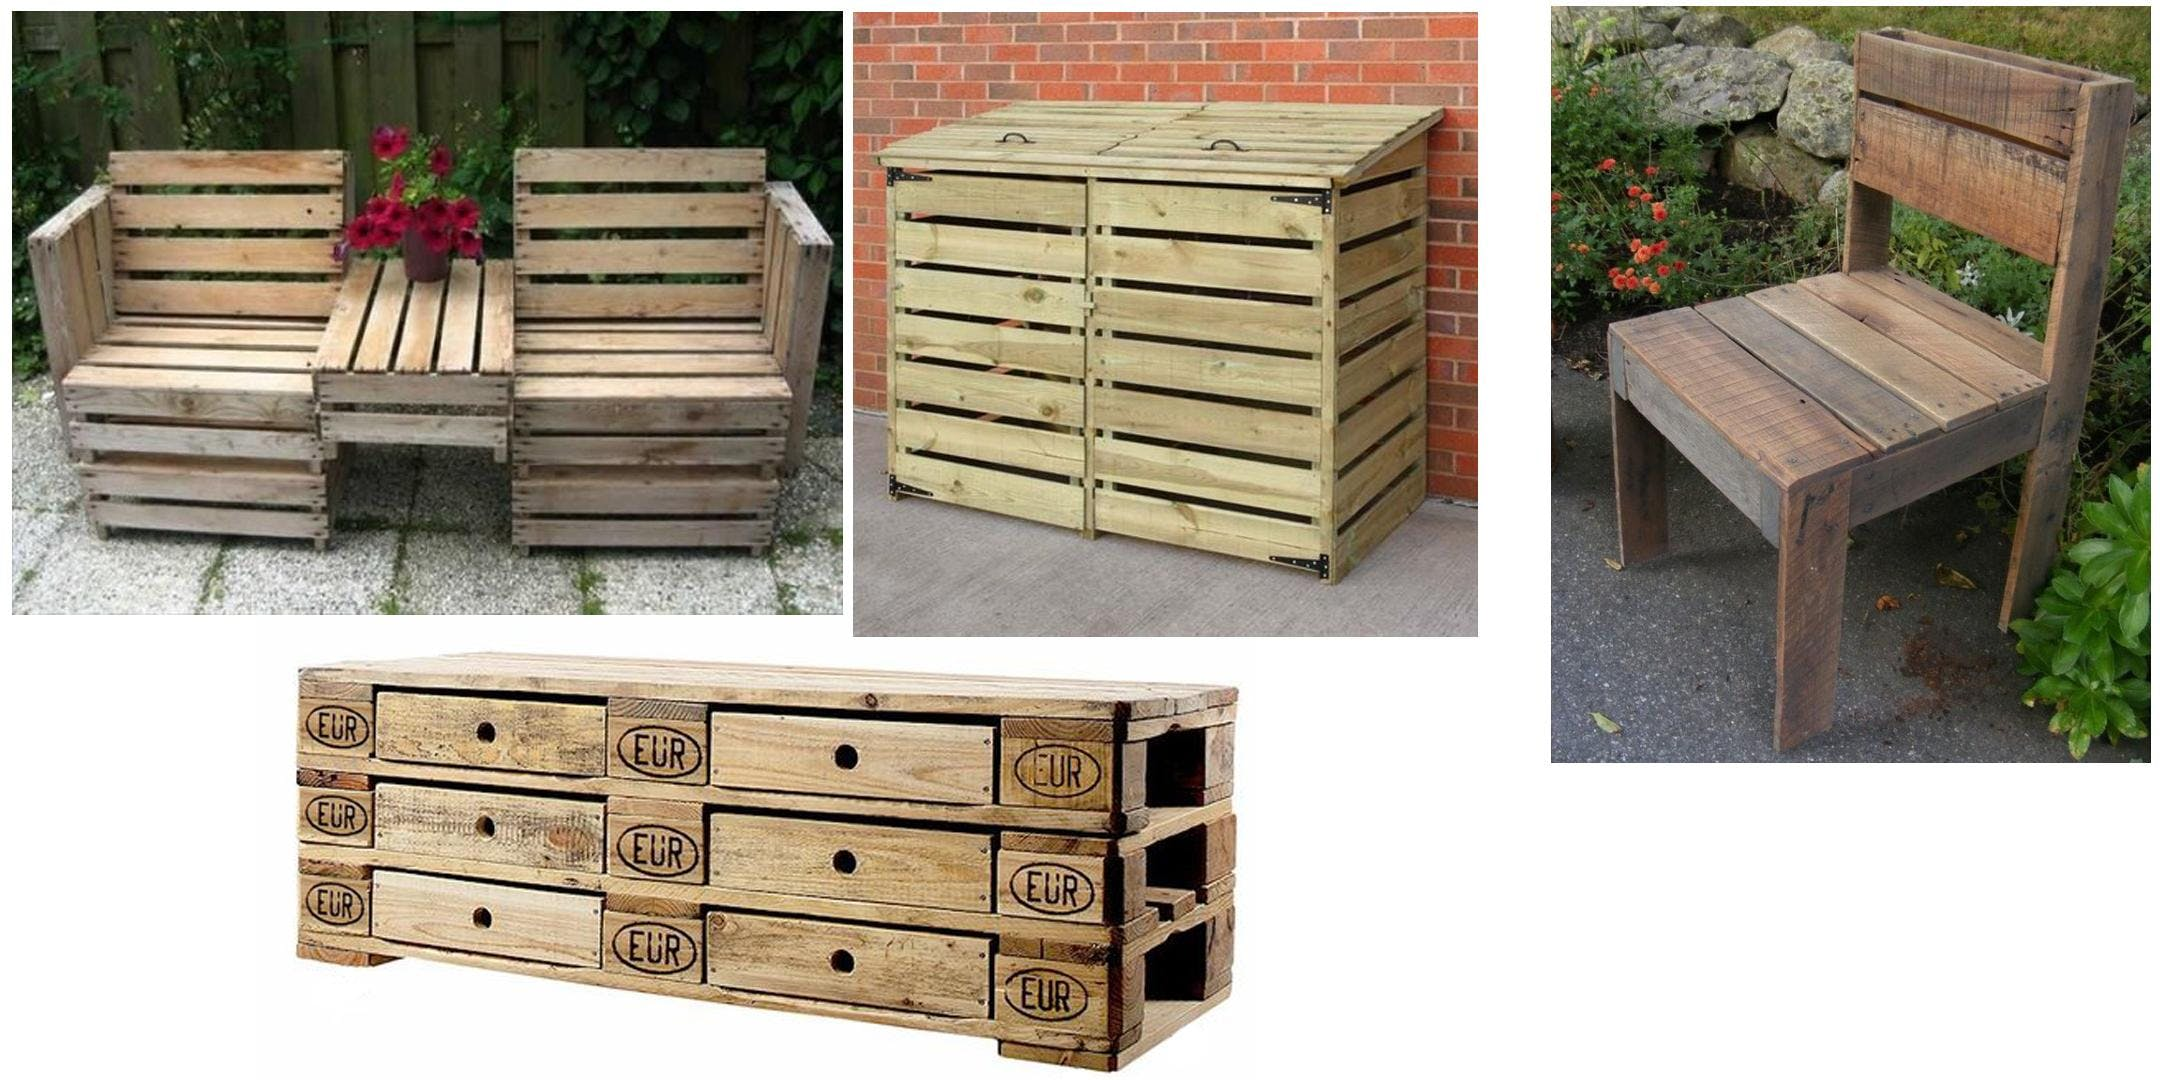 Pallet Upcycling - make a chair to take away!